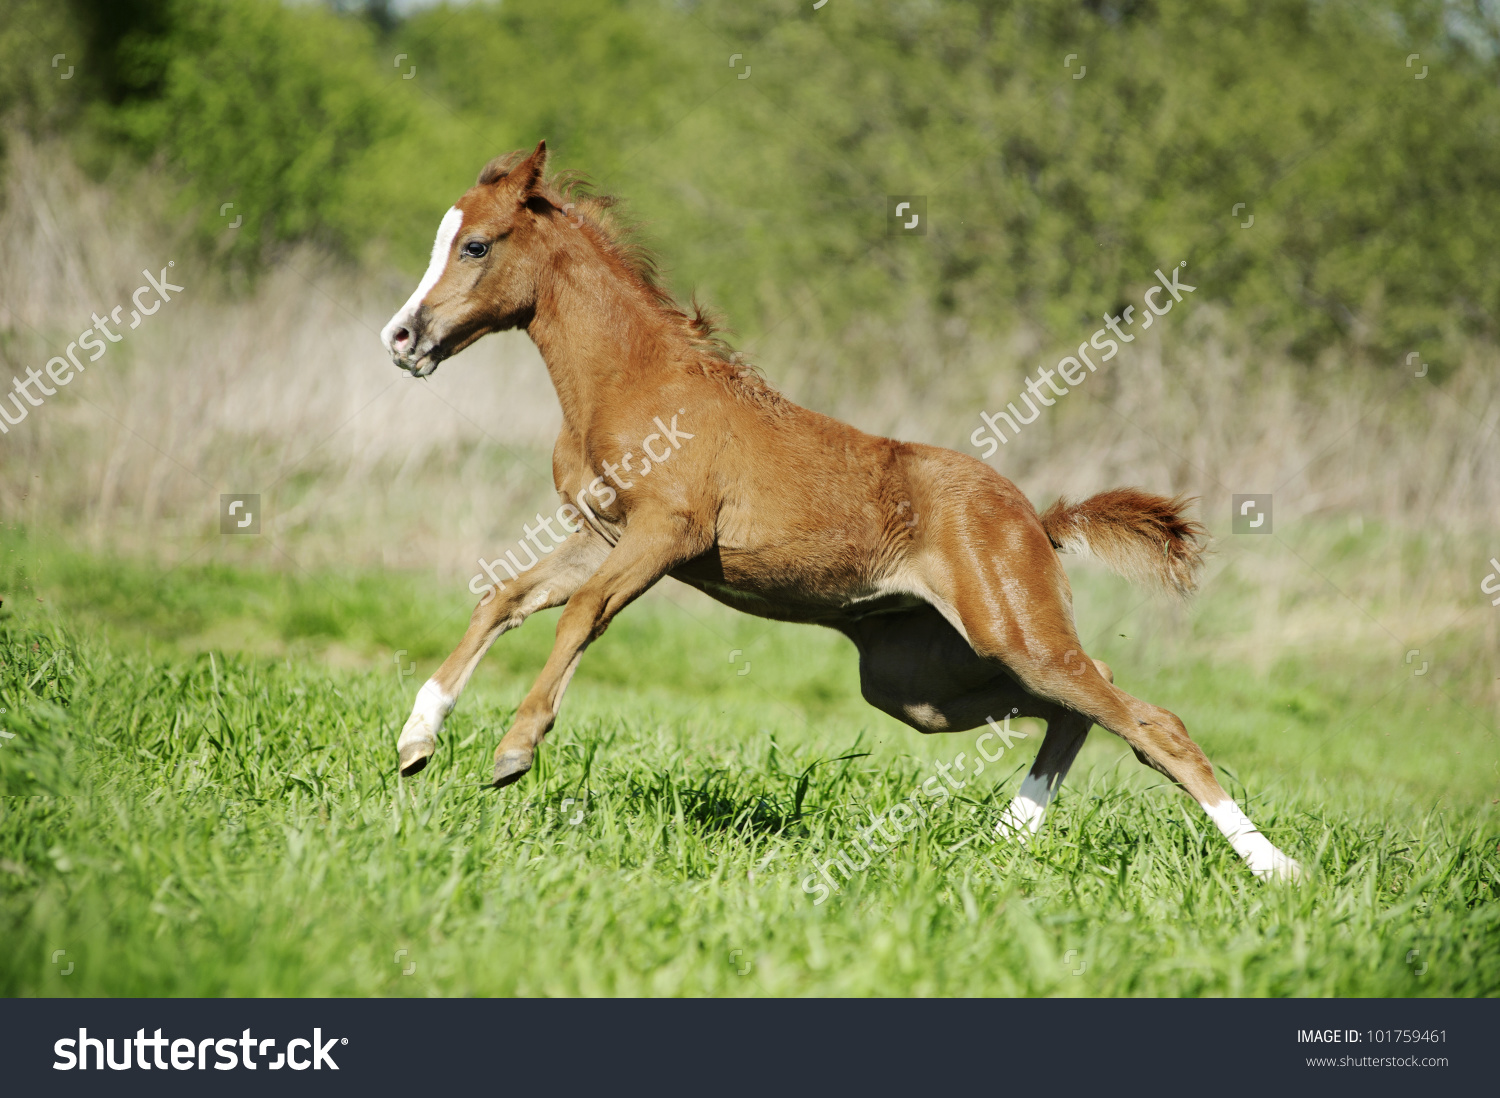 Little Baby Foal Playing On Field Stock Photo 101759461.